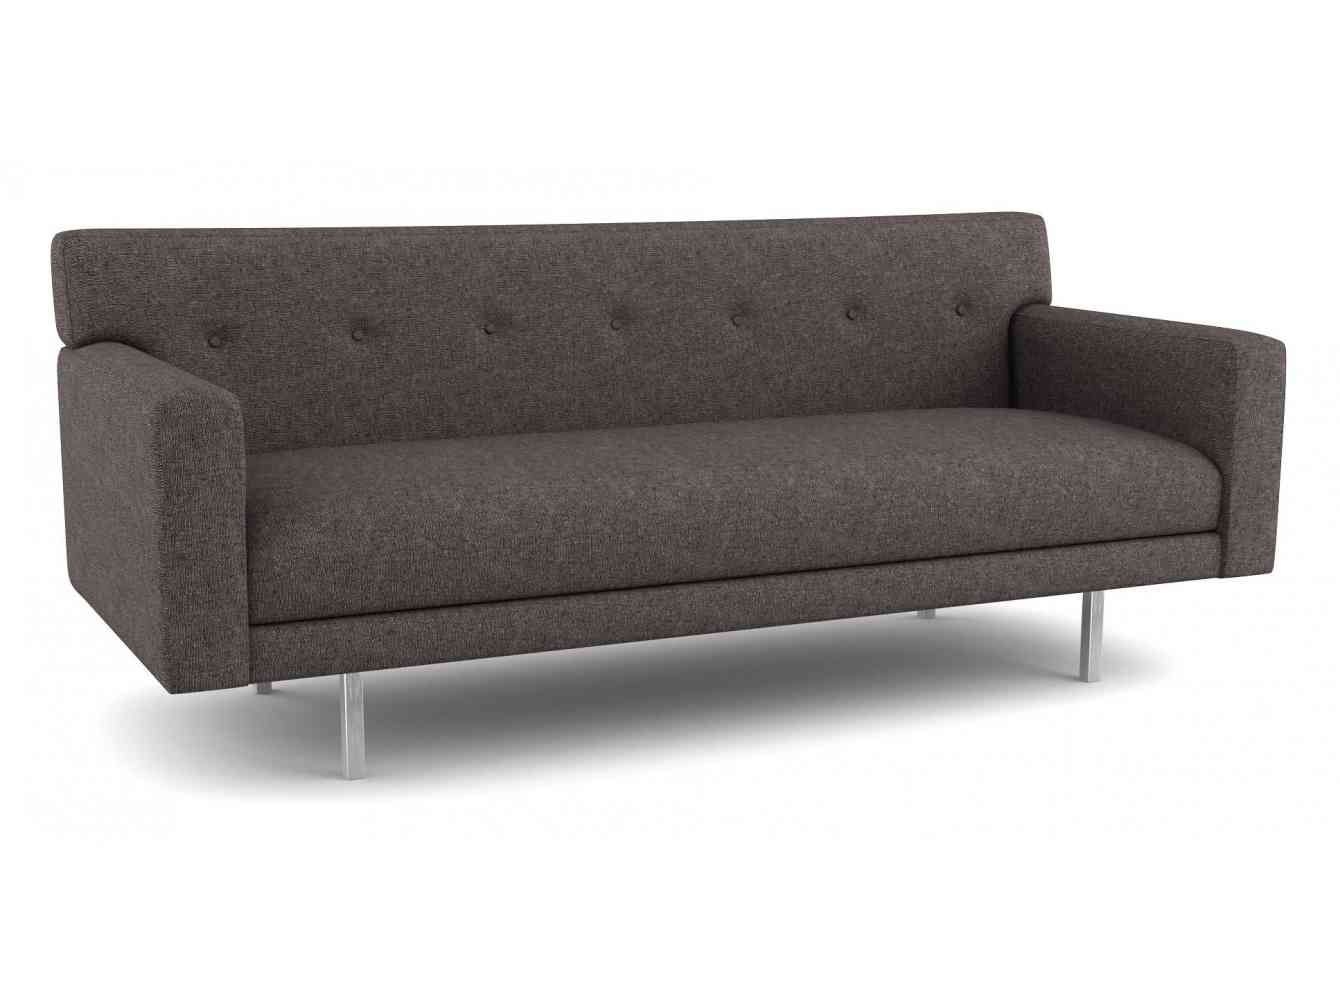 The Ason Sofa With It S Small And Compact Frame Offers A Great Seating Solution For Er Es Ons Give Nice Trim Look As Well